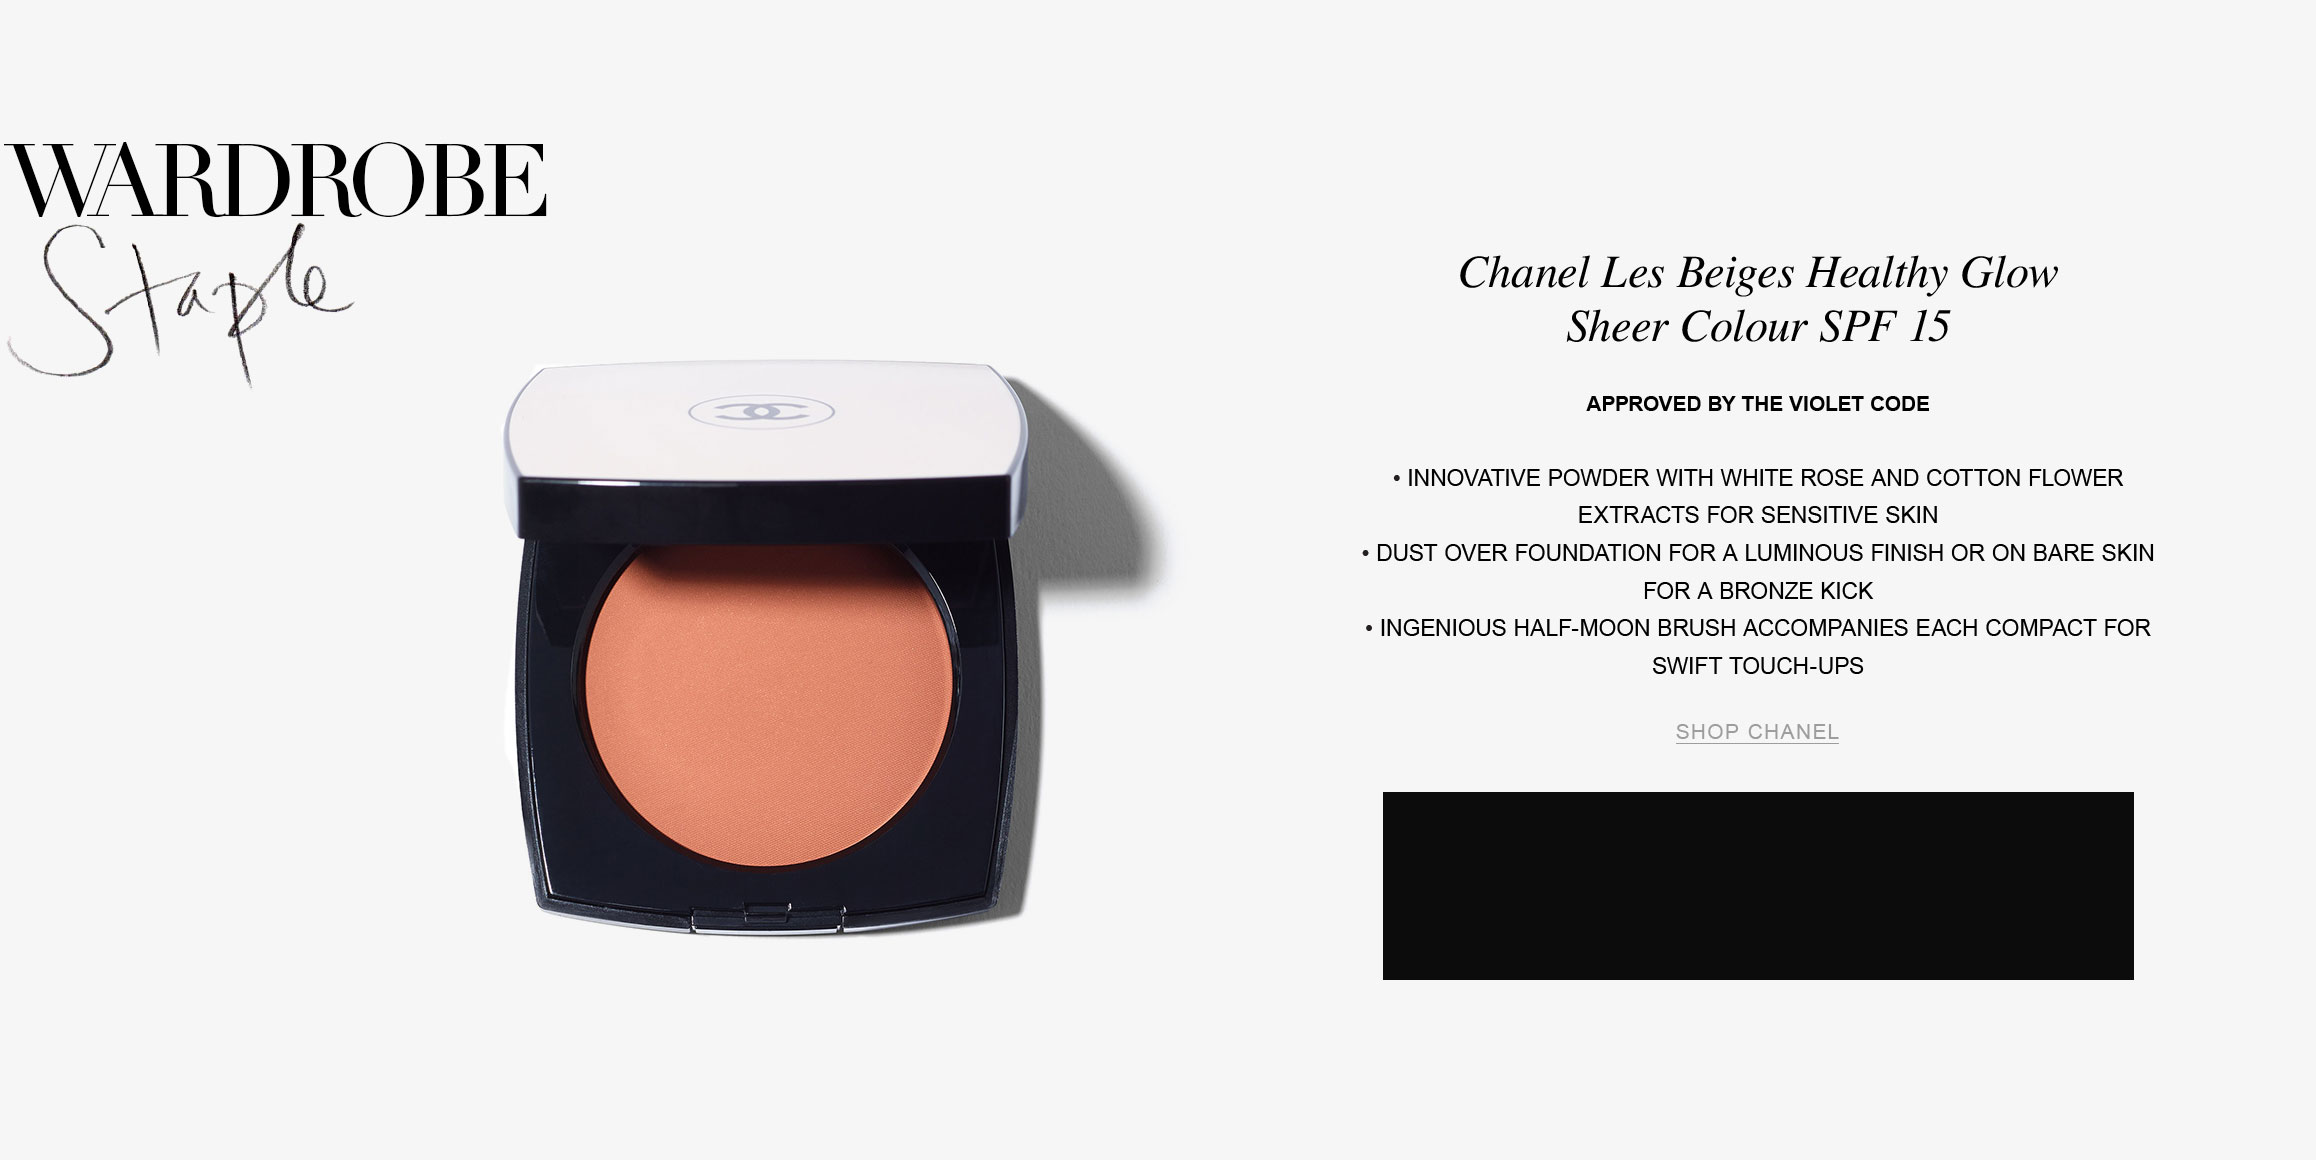 CHANEL-LES-BEIGES-HEALTHY-GLOW-SHEER-COLOUR-SPF-15-Interstitial.jpg